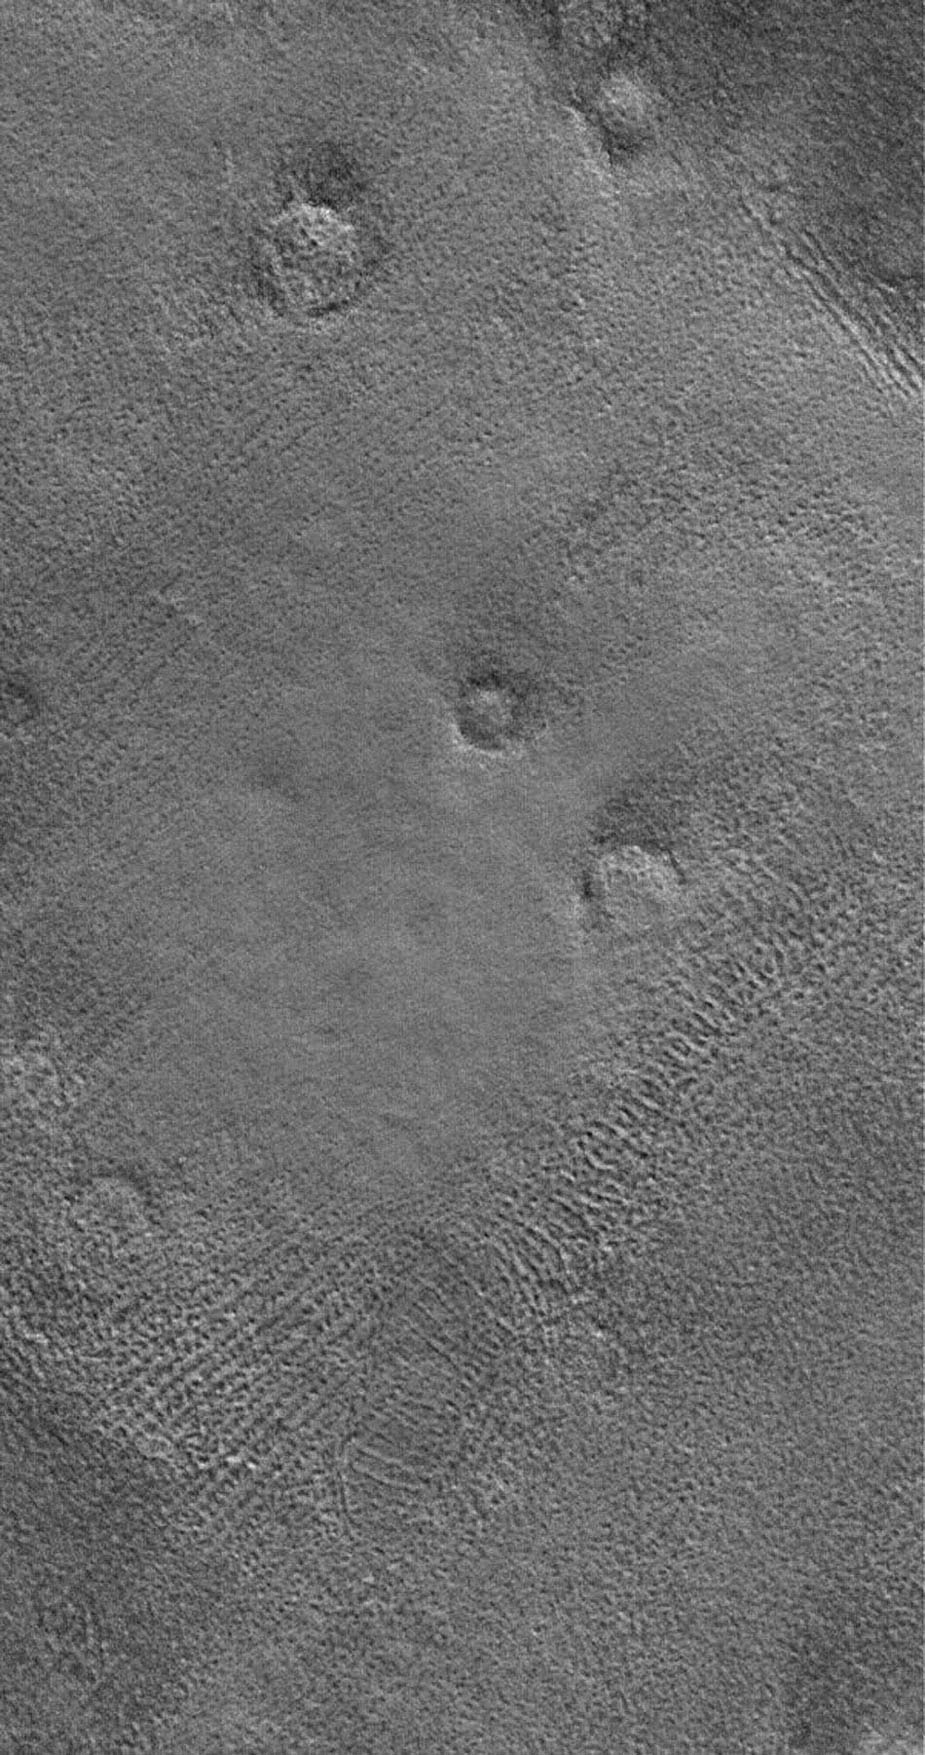 This image from NASA's Mars Global Surveyor shows the patterned ground of the cold, martian northern plains. The circular features are the sites of buried impact craters.